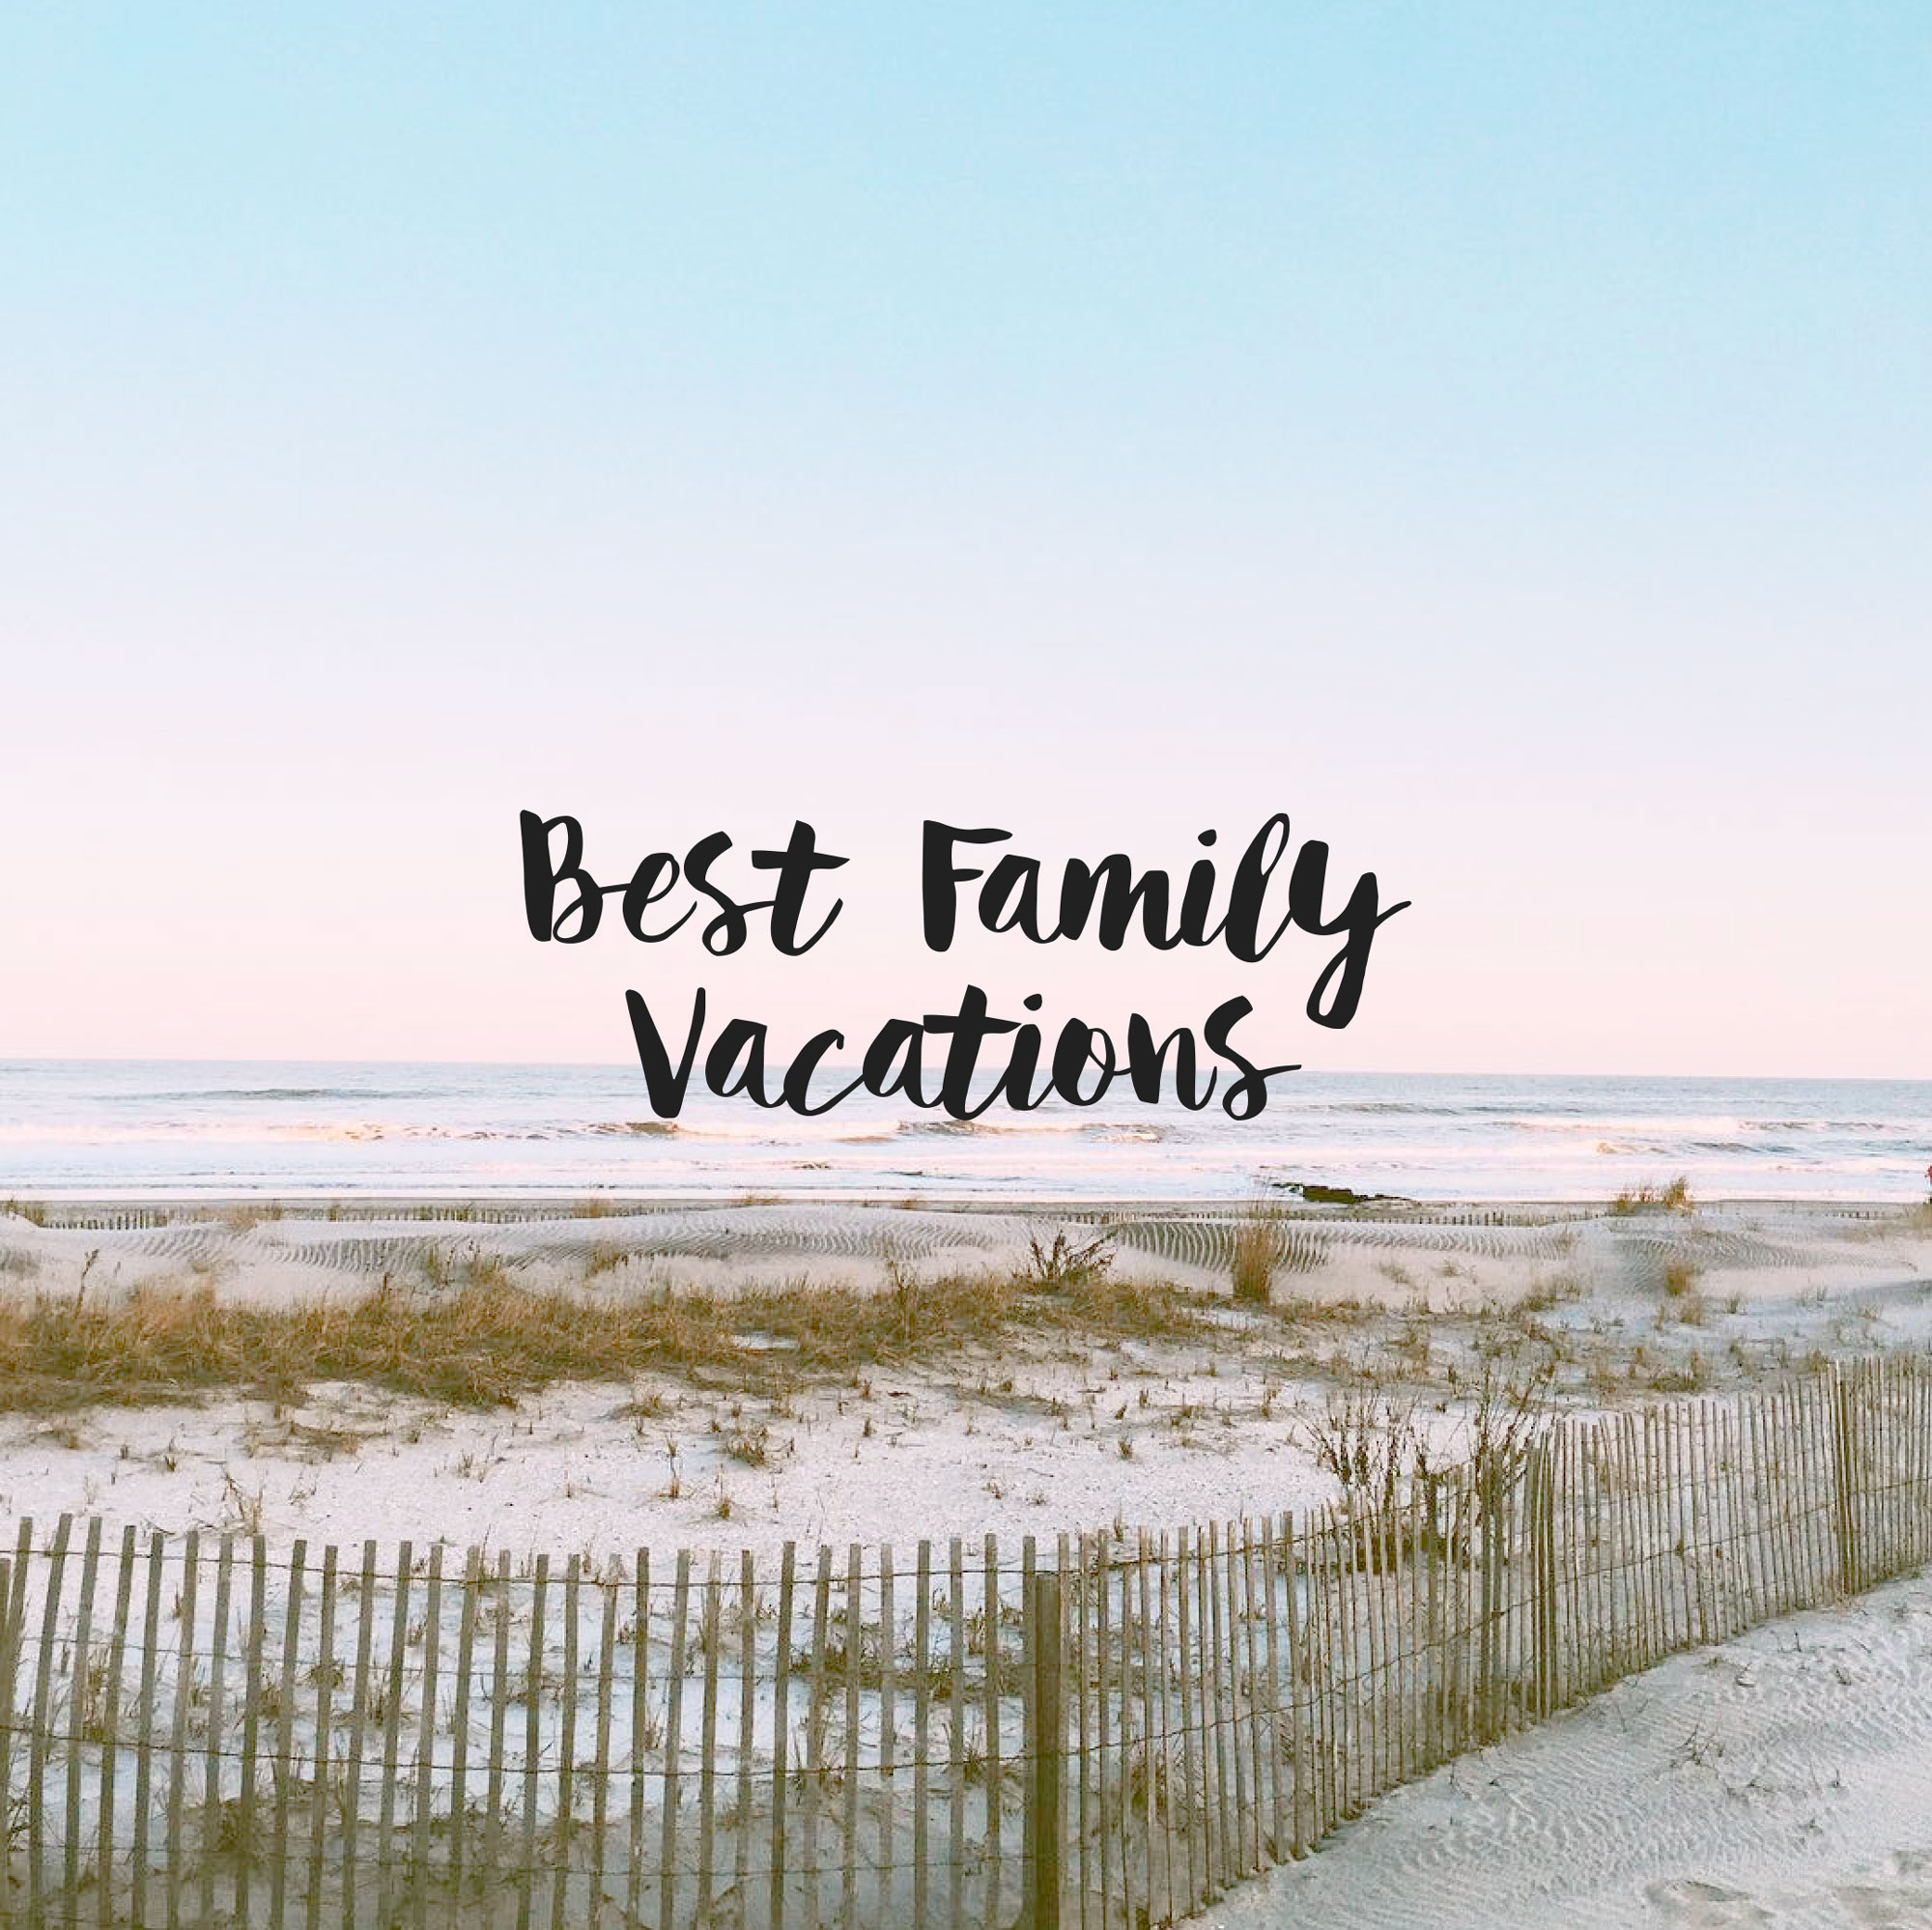 Best place for family vacation ocean city nj for Best places for a vacation